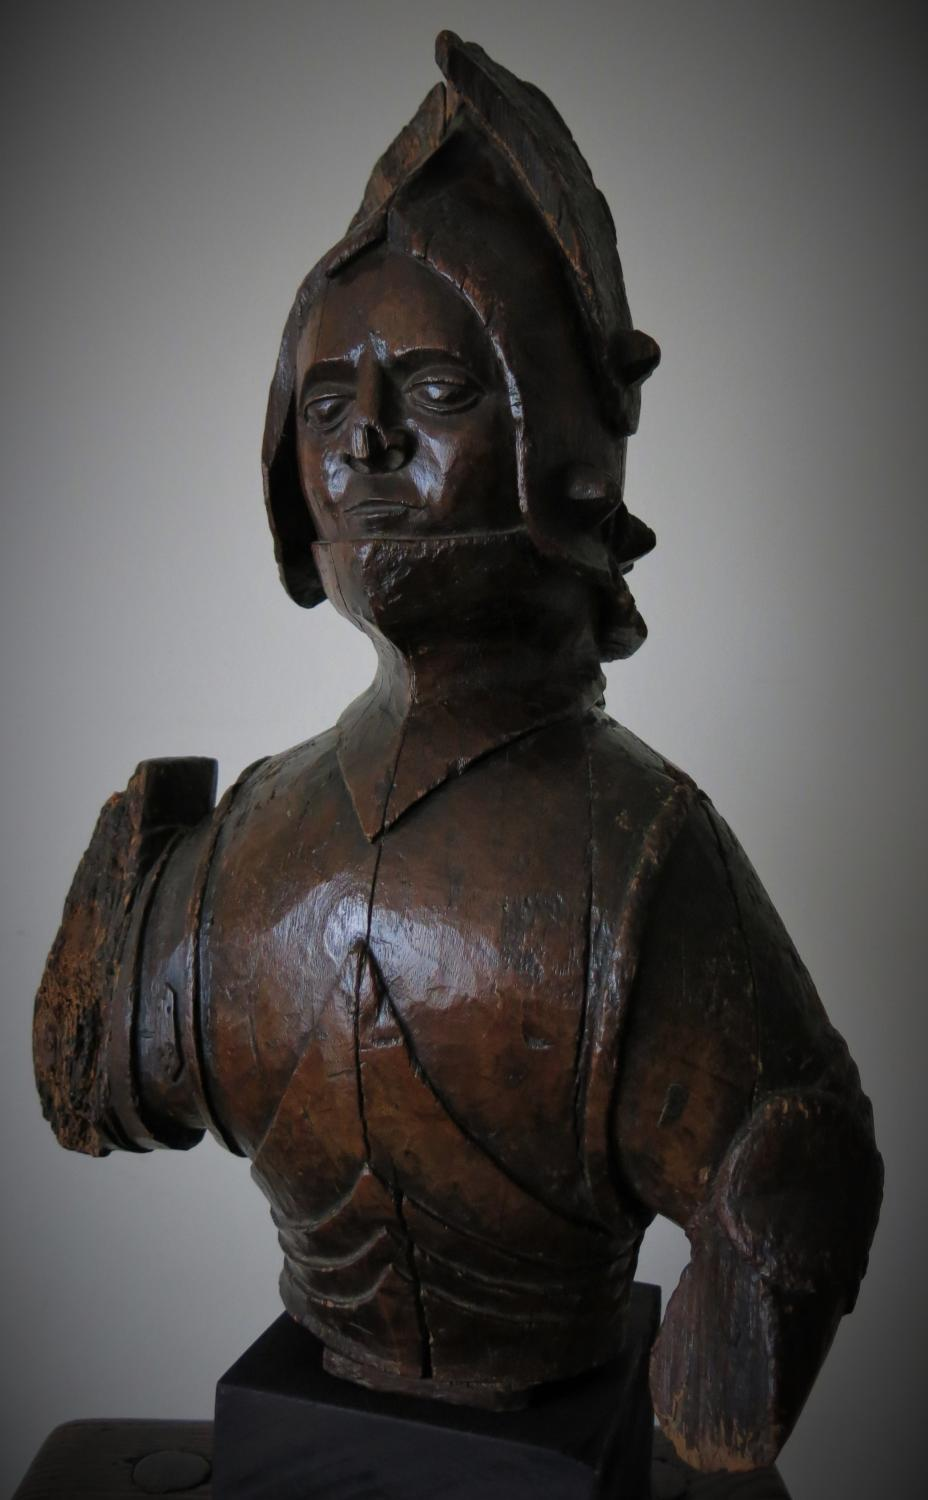 A Very Rare 15th Century Medieval Knight - Archive